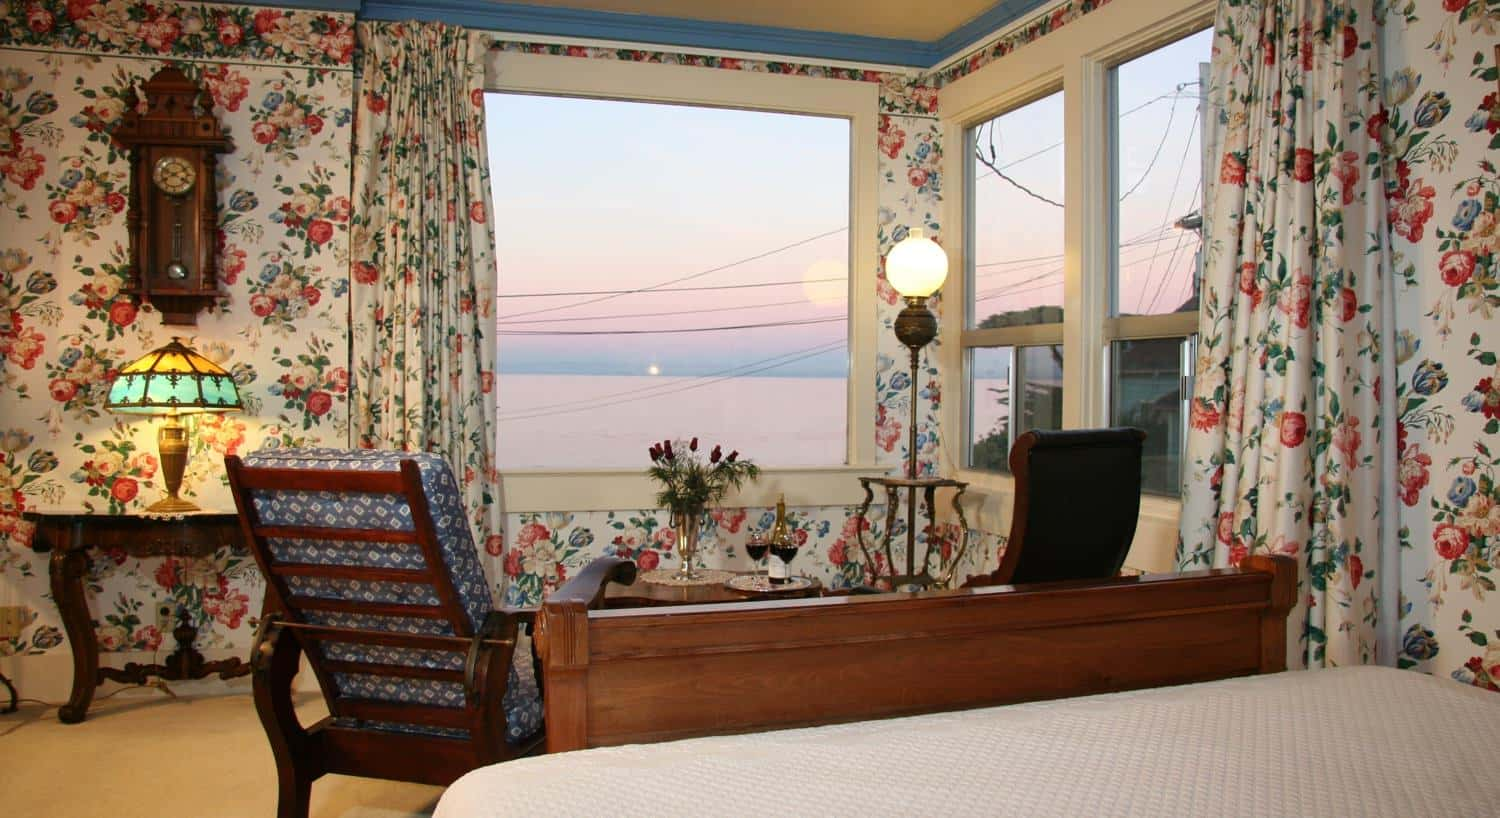 Suite guest room, red and green floral walls, corner windows overlooking the ocean, two sitting chairs and wood bed